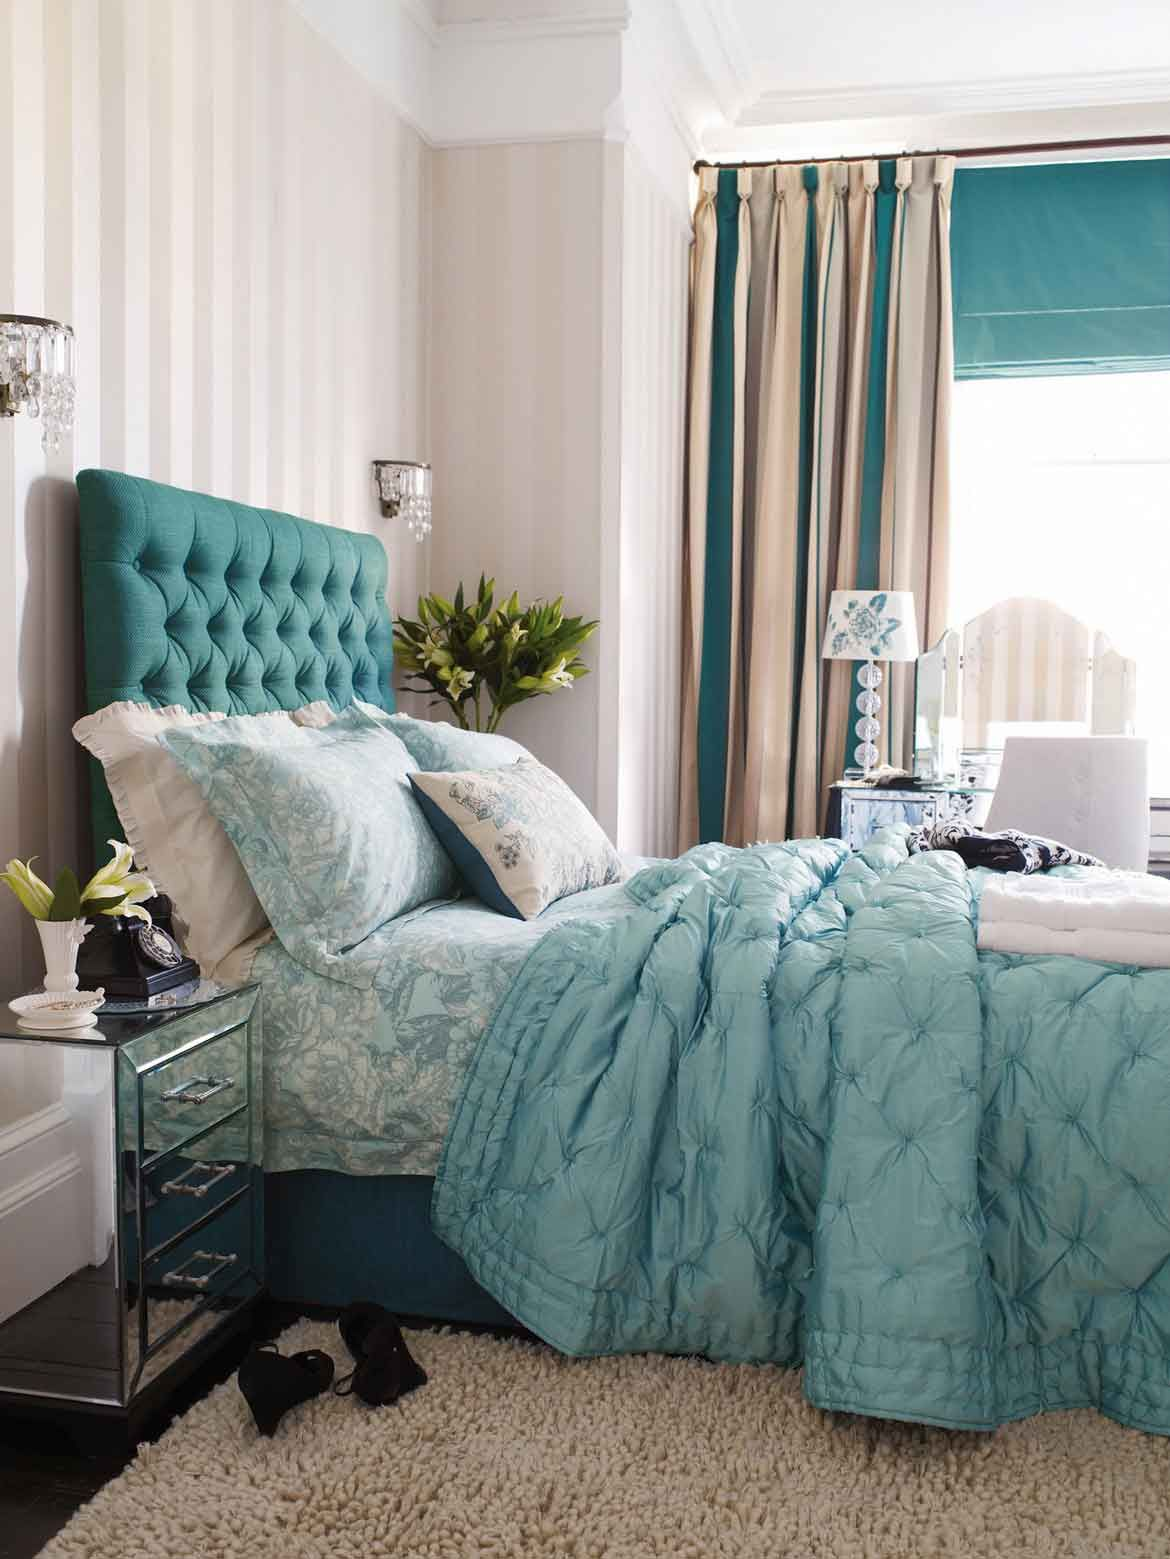 Light blue bedroom curtains - Blue Bedroom Curtains For Girls Blue And White Bedroom Curtains Blue Curtain Bedroom Decoration